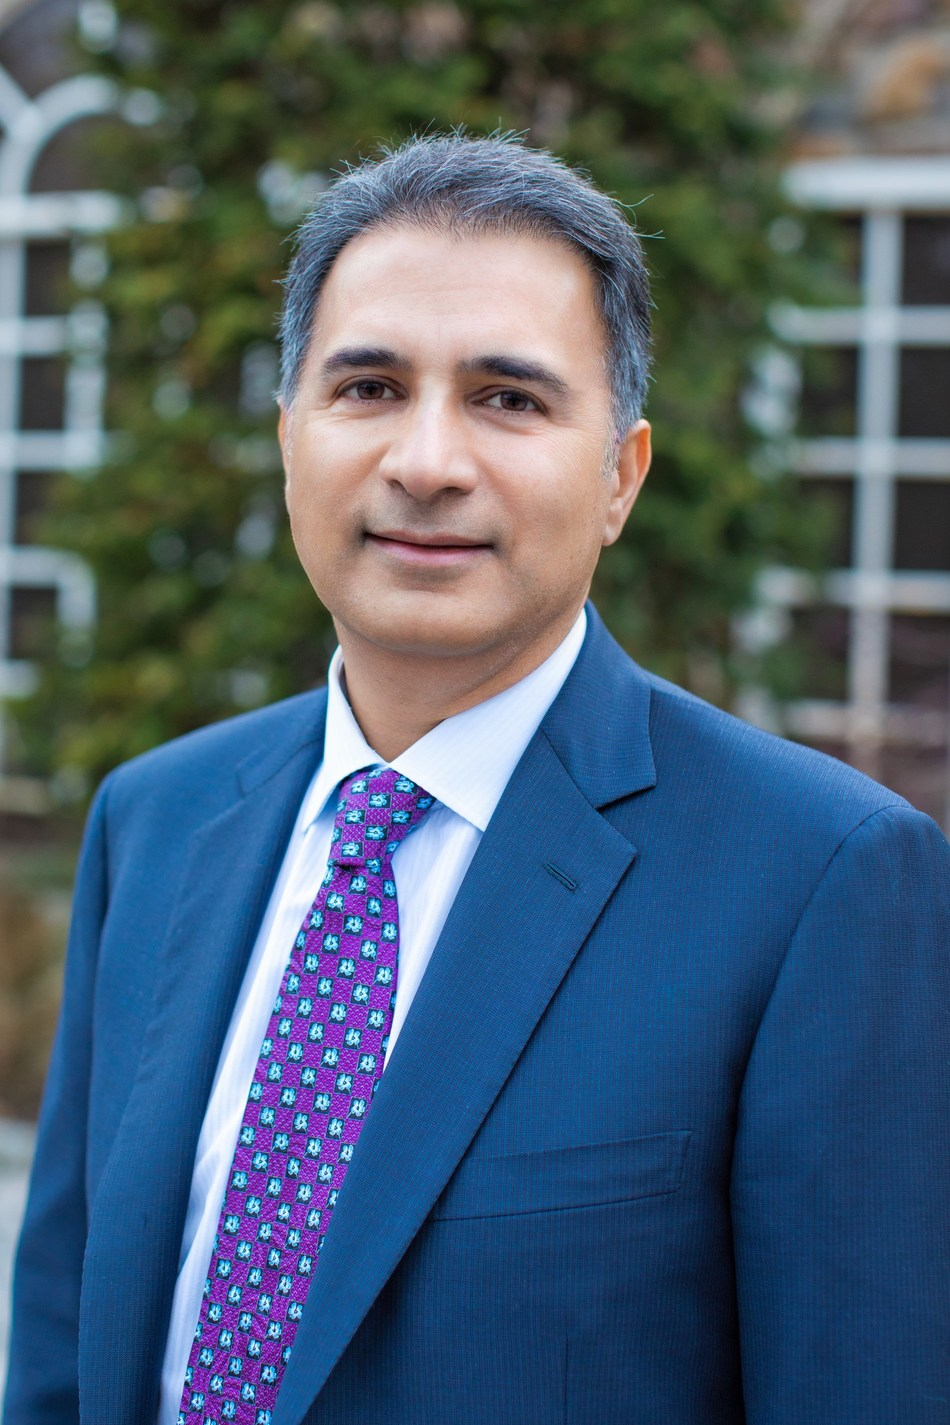 Anand Khubani, New Jersey business man and philanthropist, named the 2018 Children's Hope India Lotus Award Honoree